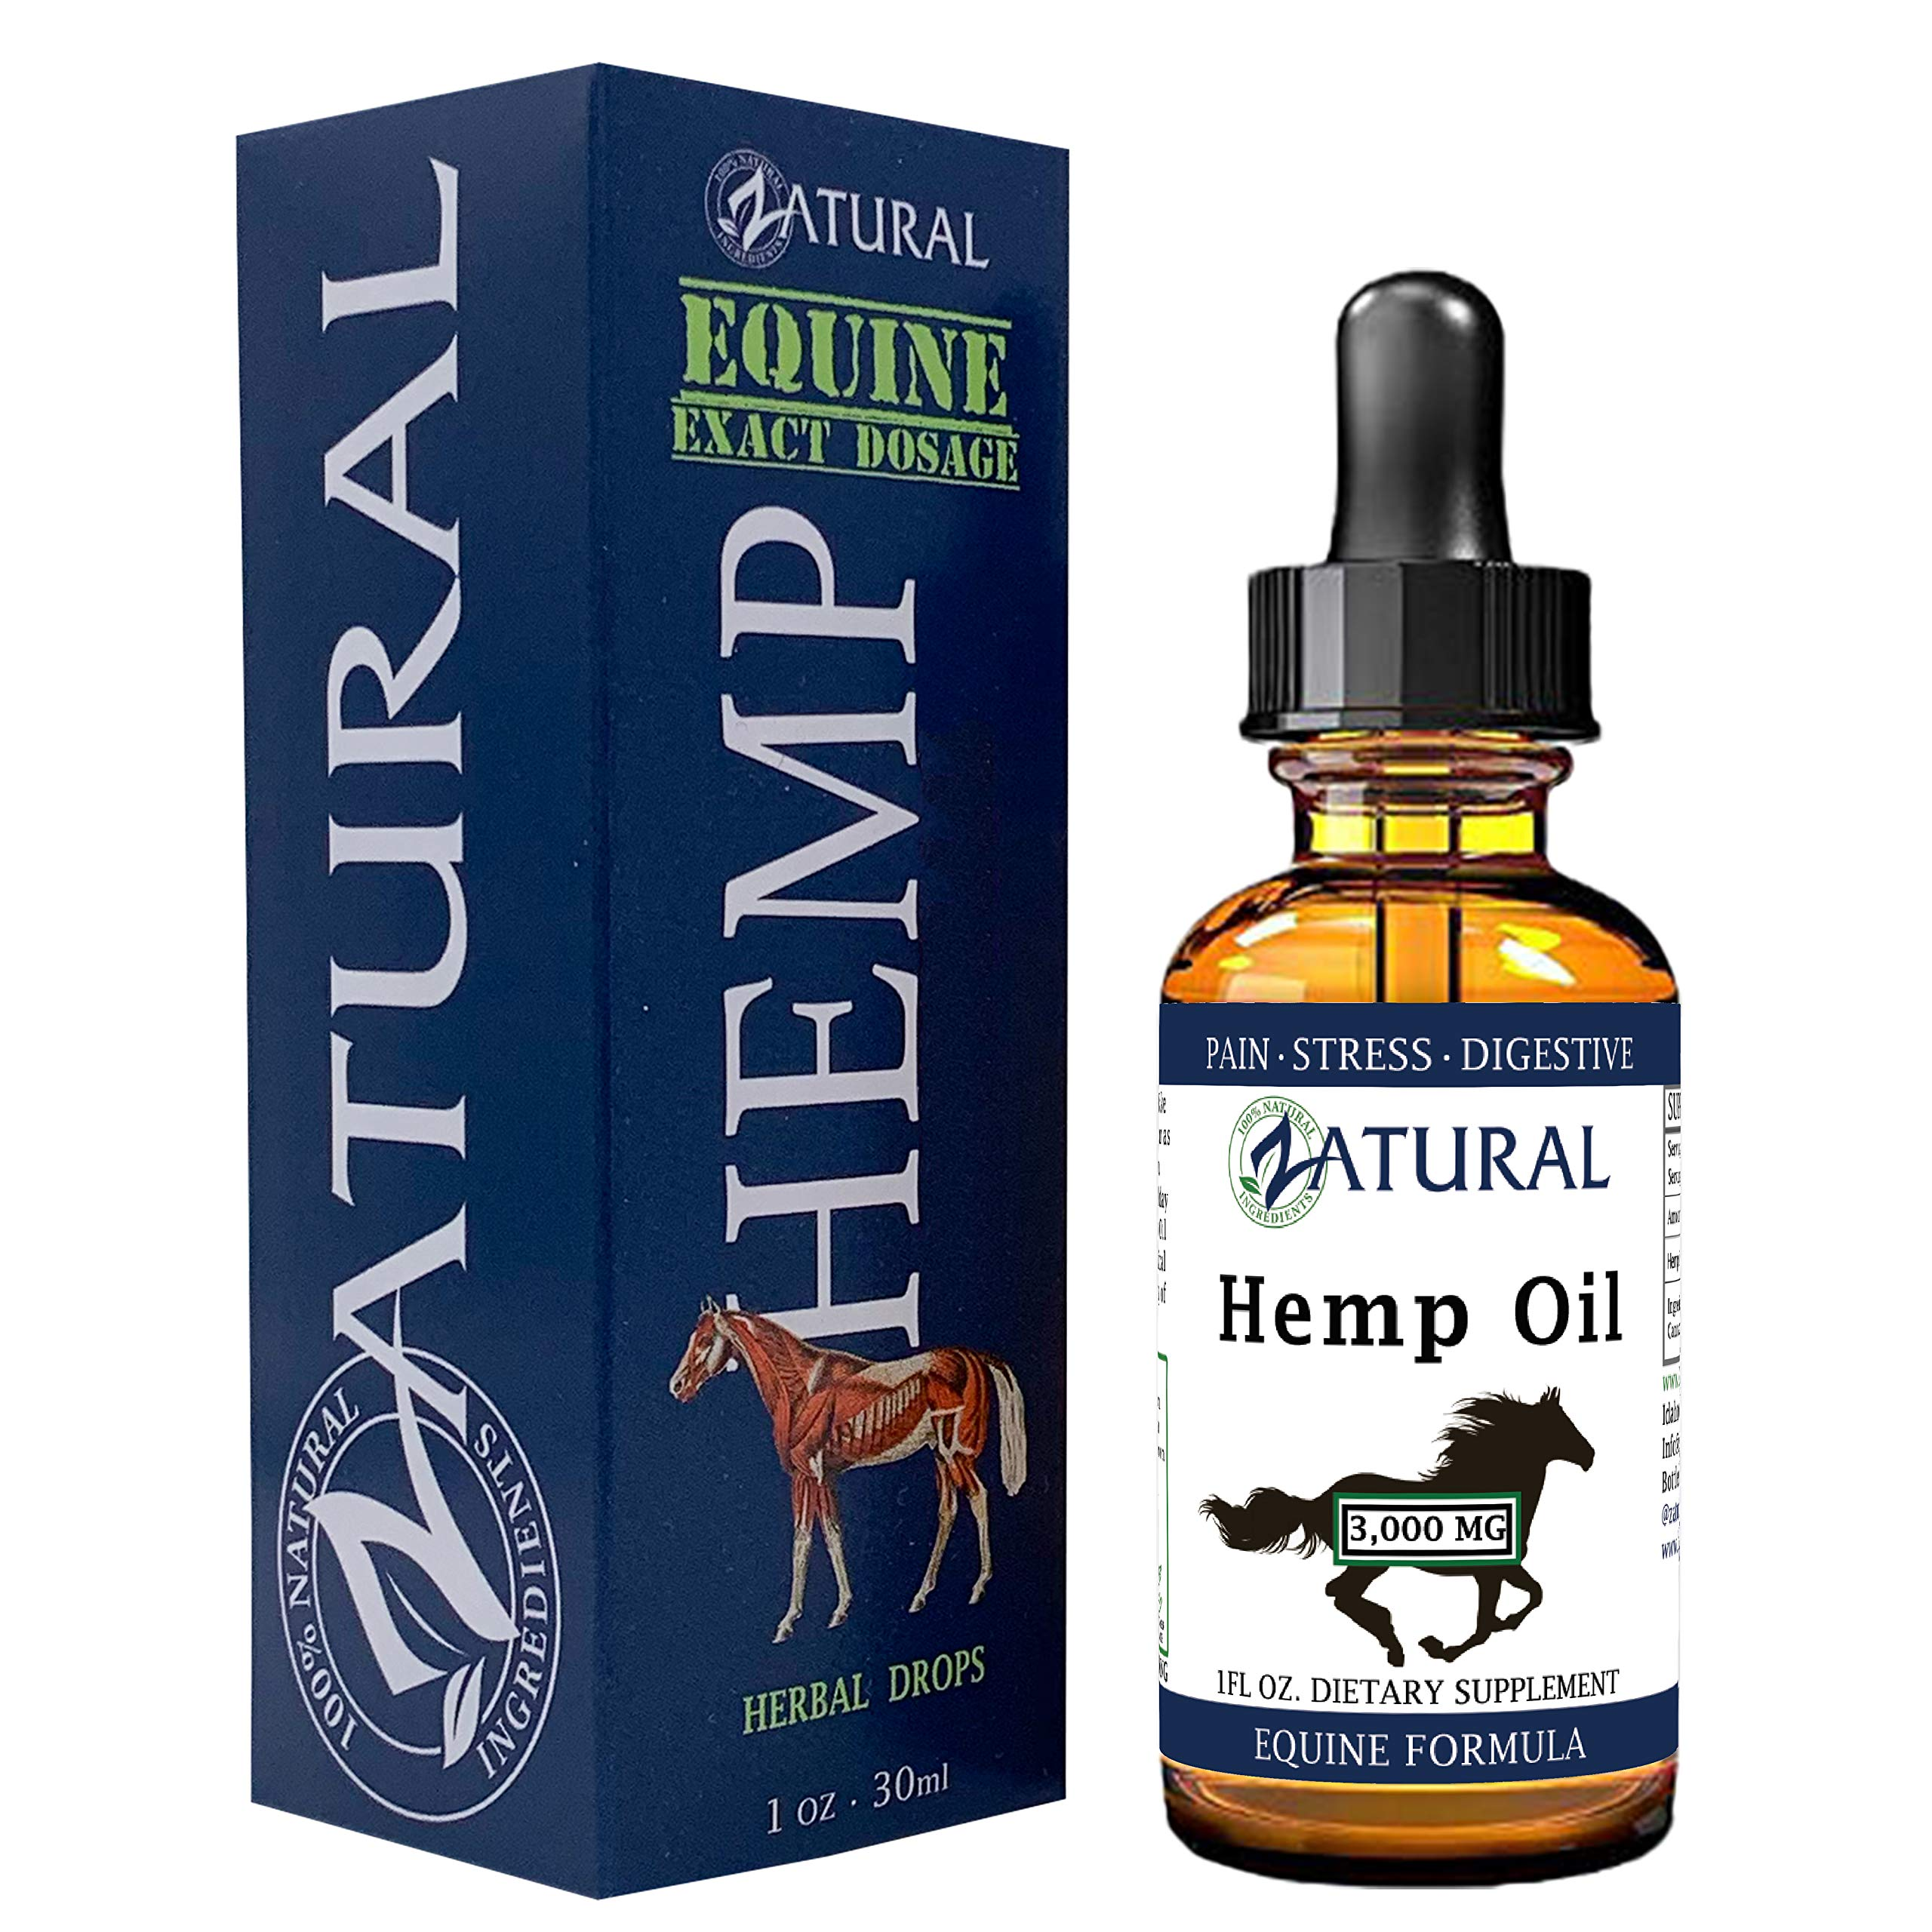 Zatural Equine Hemp Oil 3,000mg - Hemp Seed Oil for Horses - Advanced Equine Formula (3,000mg) by Zatural